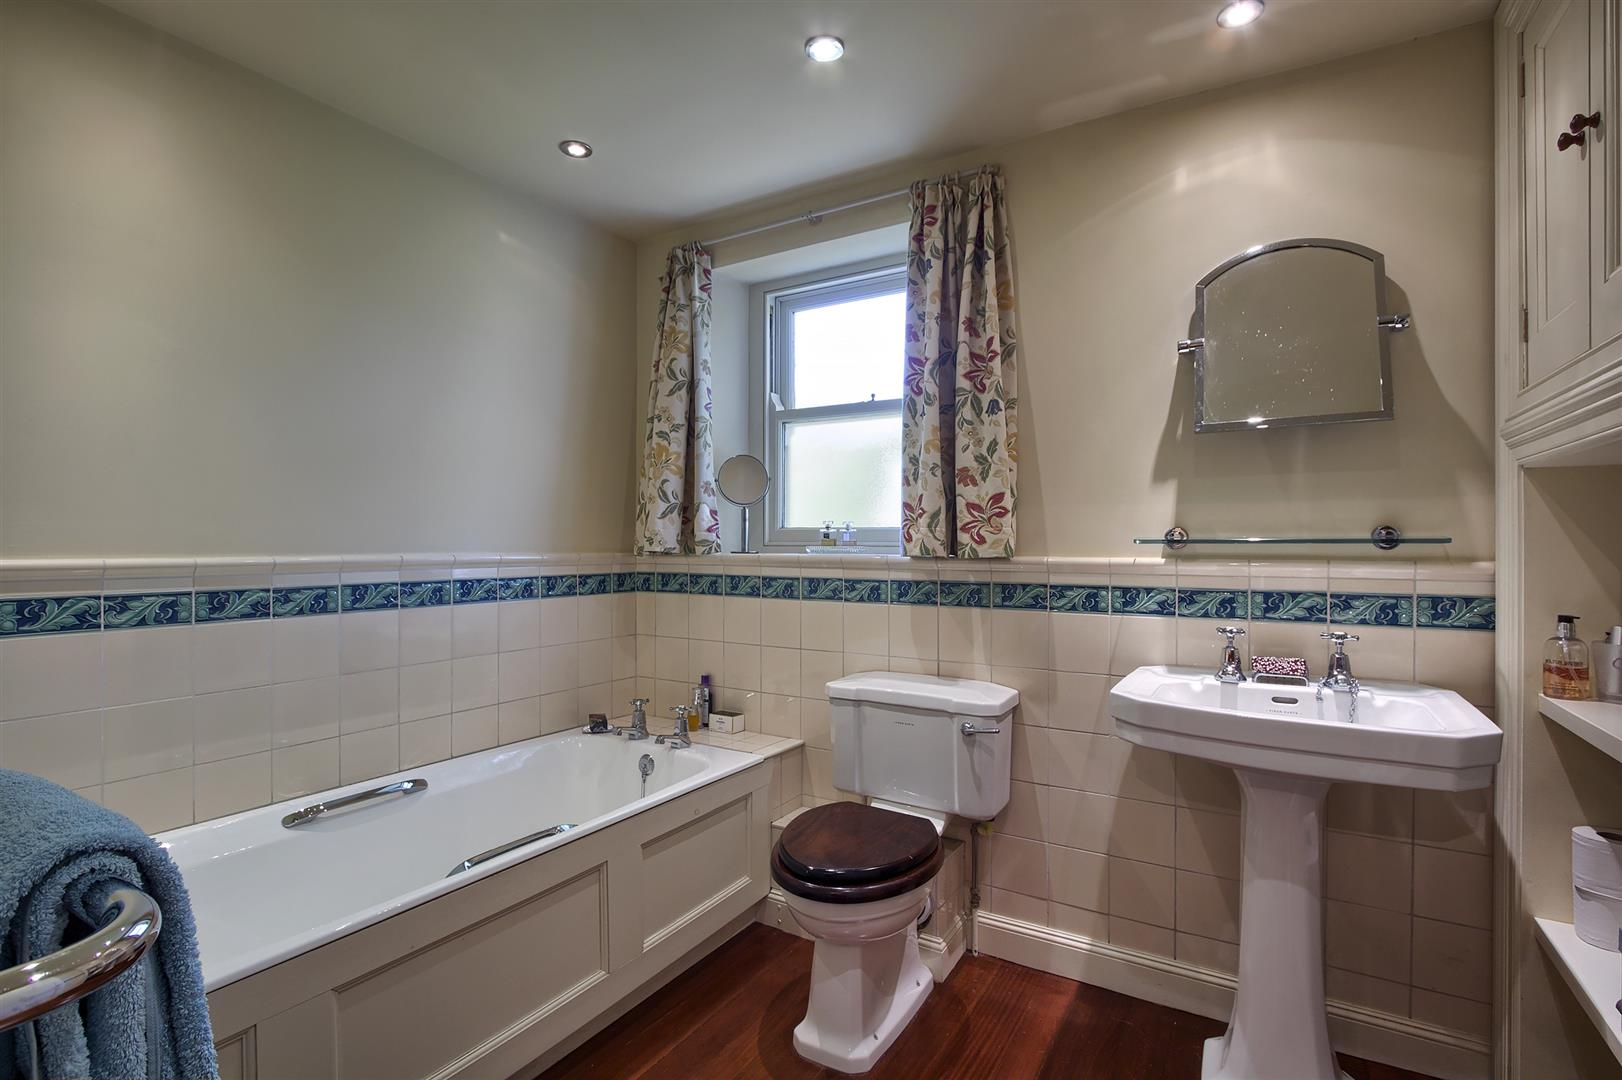 5 bedroom detached house For Sale in Bolton - bath-x2.jpg.